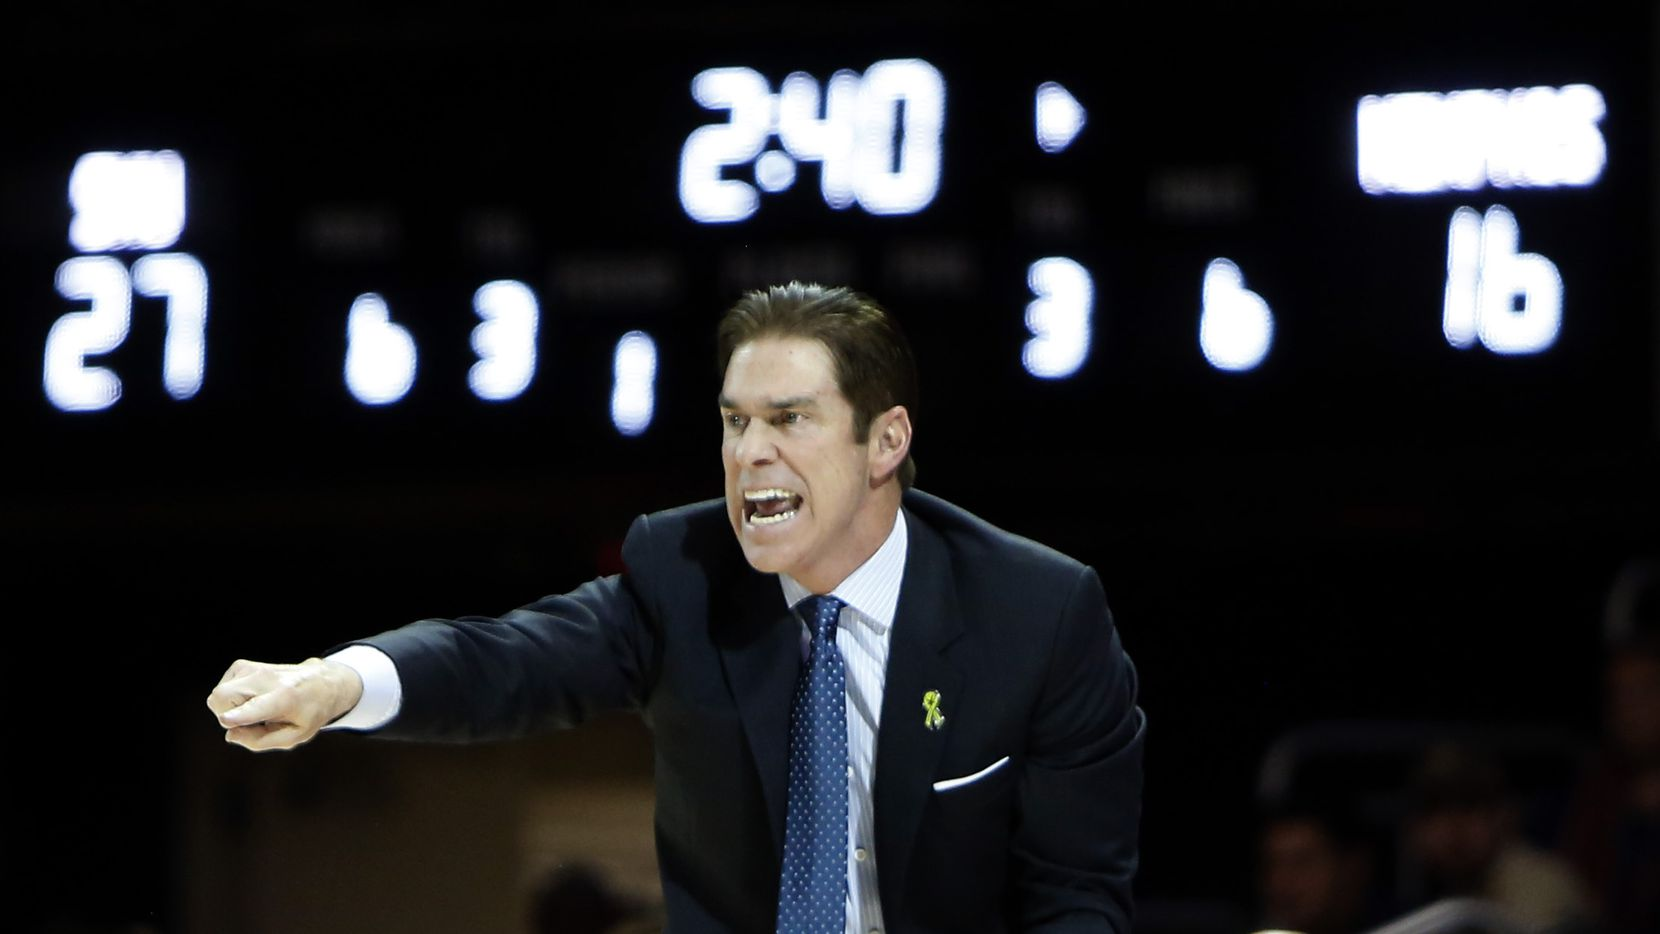 SMU head coach Tim Jankovich emphatically sends game strategy into his players during first half action against Memphis. The two teams from the NCAA's American Athletic Conference played their men's basketball game at SMU's Moody Coliseum in Dallas on February 25, 2020.